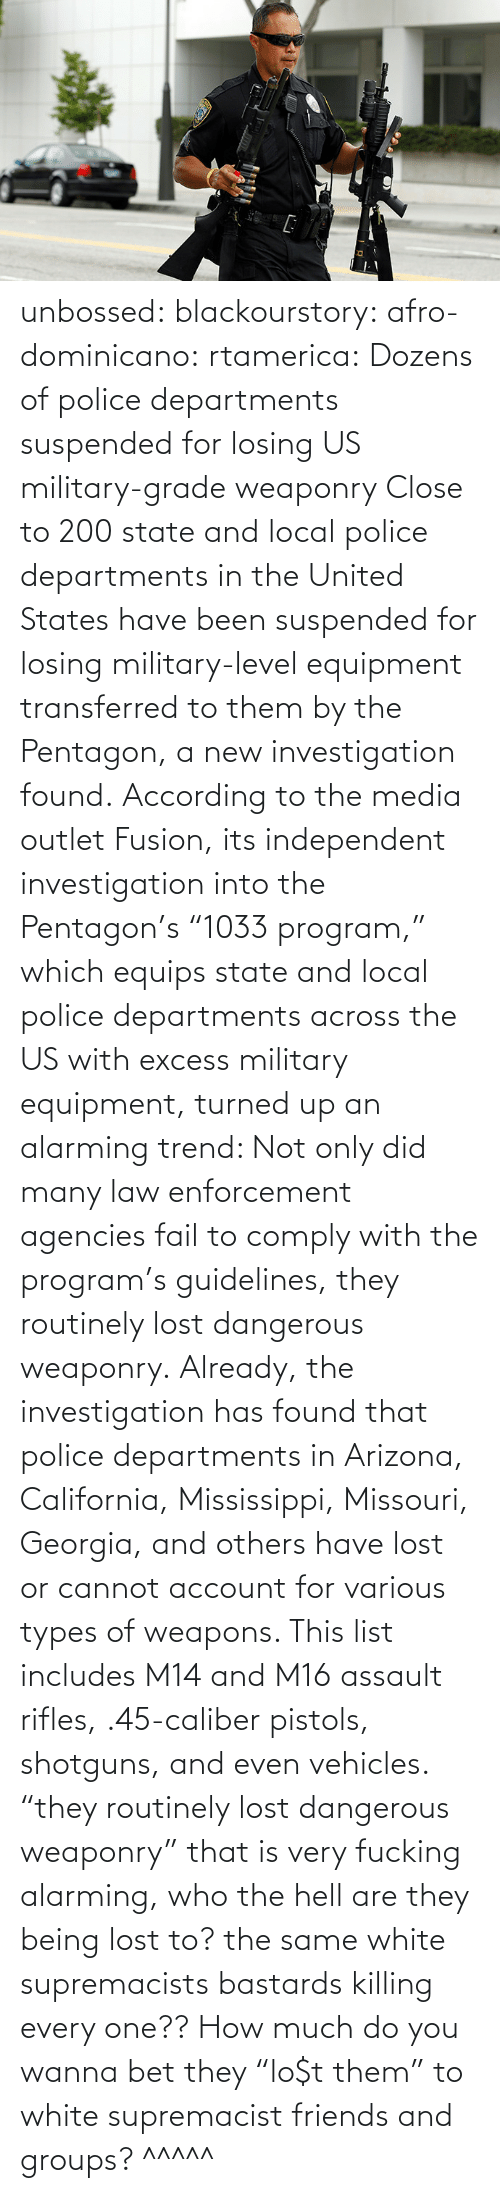 "others: unbossed: blackourstory:  afro-dominicano:  rtamerica:  Dozens of police departments suspended for losing US military-grade weaponry Close to 200 state and local police departments in the United States have been suspended for losing military-level equipment transferred to them by the Pentagon, a new investigation found. According to the media outlet Fusion, its independent investigation into the Pentagon's ""1033 program,"" which equips state and local police departments across the US with excess military equipment, turned up an alarming trend: Not only did many law enforcement agencies fail to comply with the program's guidelines, they routinely lost dangerous weaponry. Already, the investigation has found that police departments in Arizona, California, Mississippi, Missouri, Georgia, and others have lost or cannot account for various types of weapons. This list includes M14 and M16 assault rifles, .45-caliber pistols, shotguns, and even vehicles.  ""they routinely lost dangerous weaponry"" that is very fucking alarming, who the hell are they being lost to? the same white supremacists bastards killing every one??  How much do you wanna bet they ""lo$t them"" to white supremacist friends and groups?   ^^^^^"